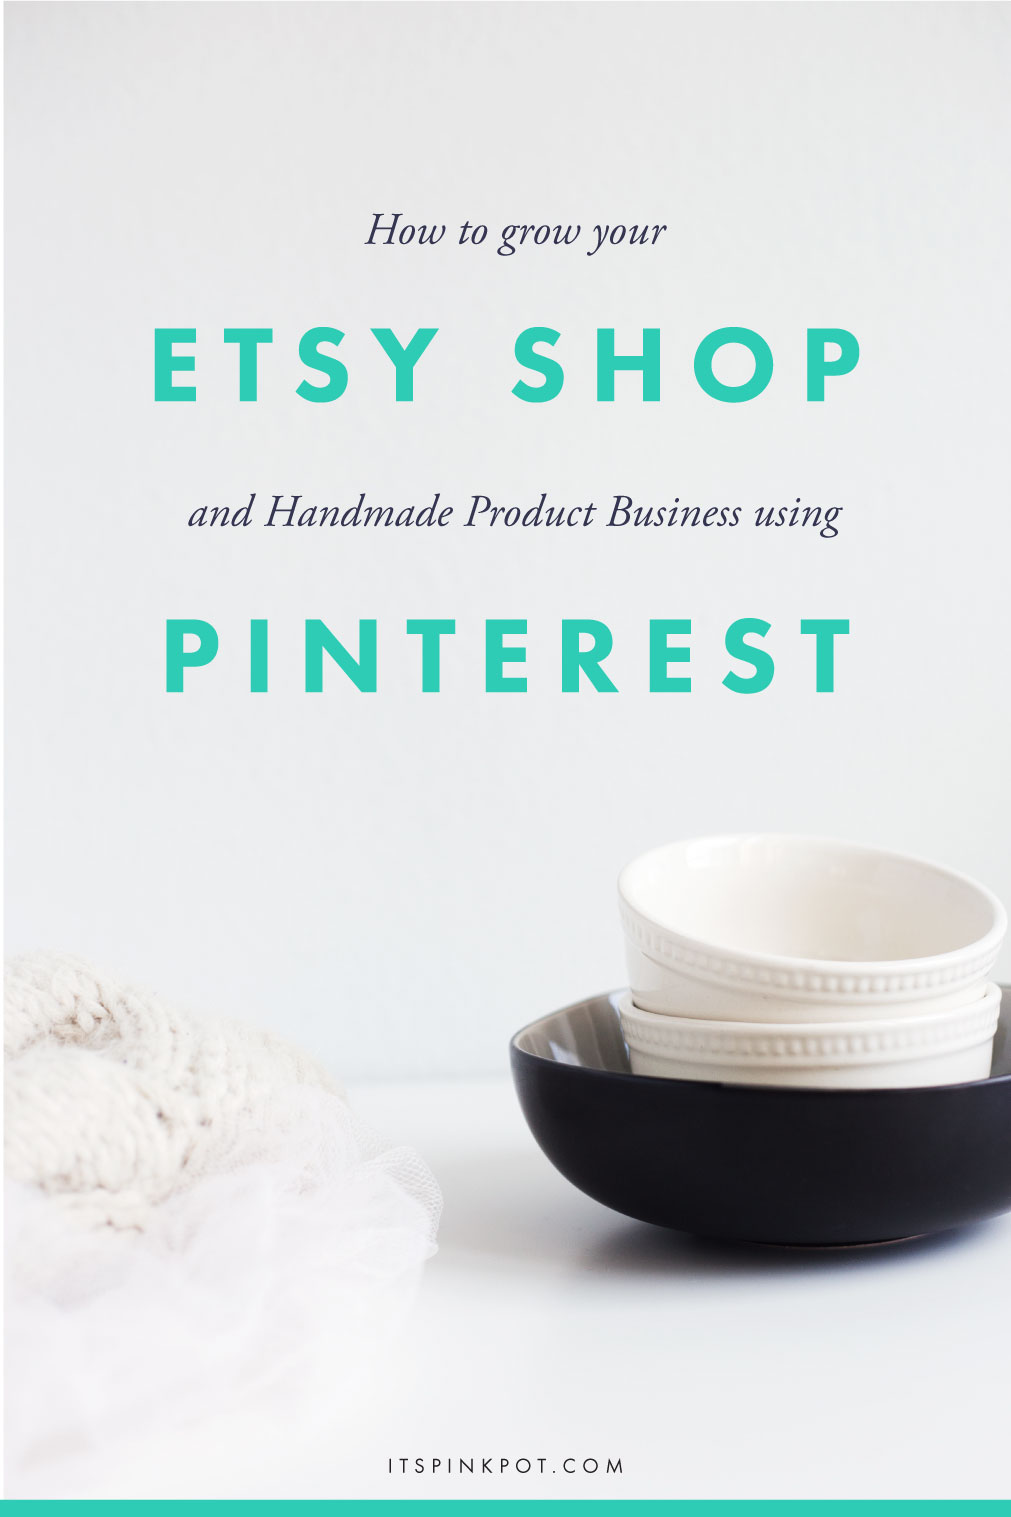 Pinterest is a great platform to grow your Etsy/handmade shop. Pinterest has helped me attract traffic, build a loyal audience, gain clients & customers like no other platform. My Pinterest following increased from over 3k to 17k in under 12 months. If for some reason, Pinterest is chugging along slowly for you - don't worry! Click here to read my tips on how you can use Pinterest to grow your handmade business >>